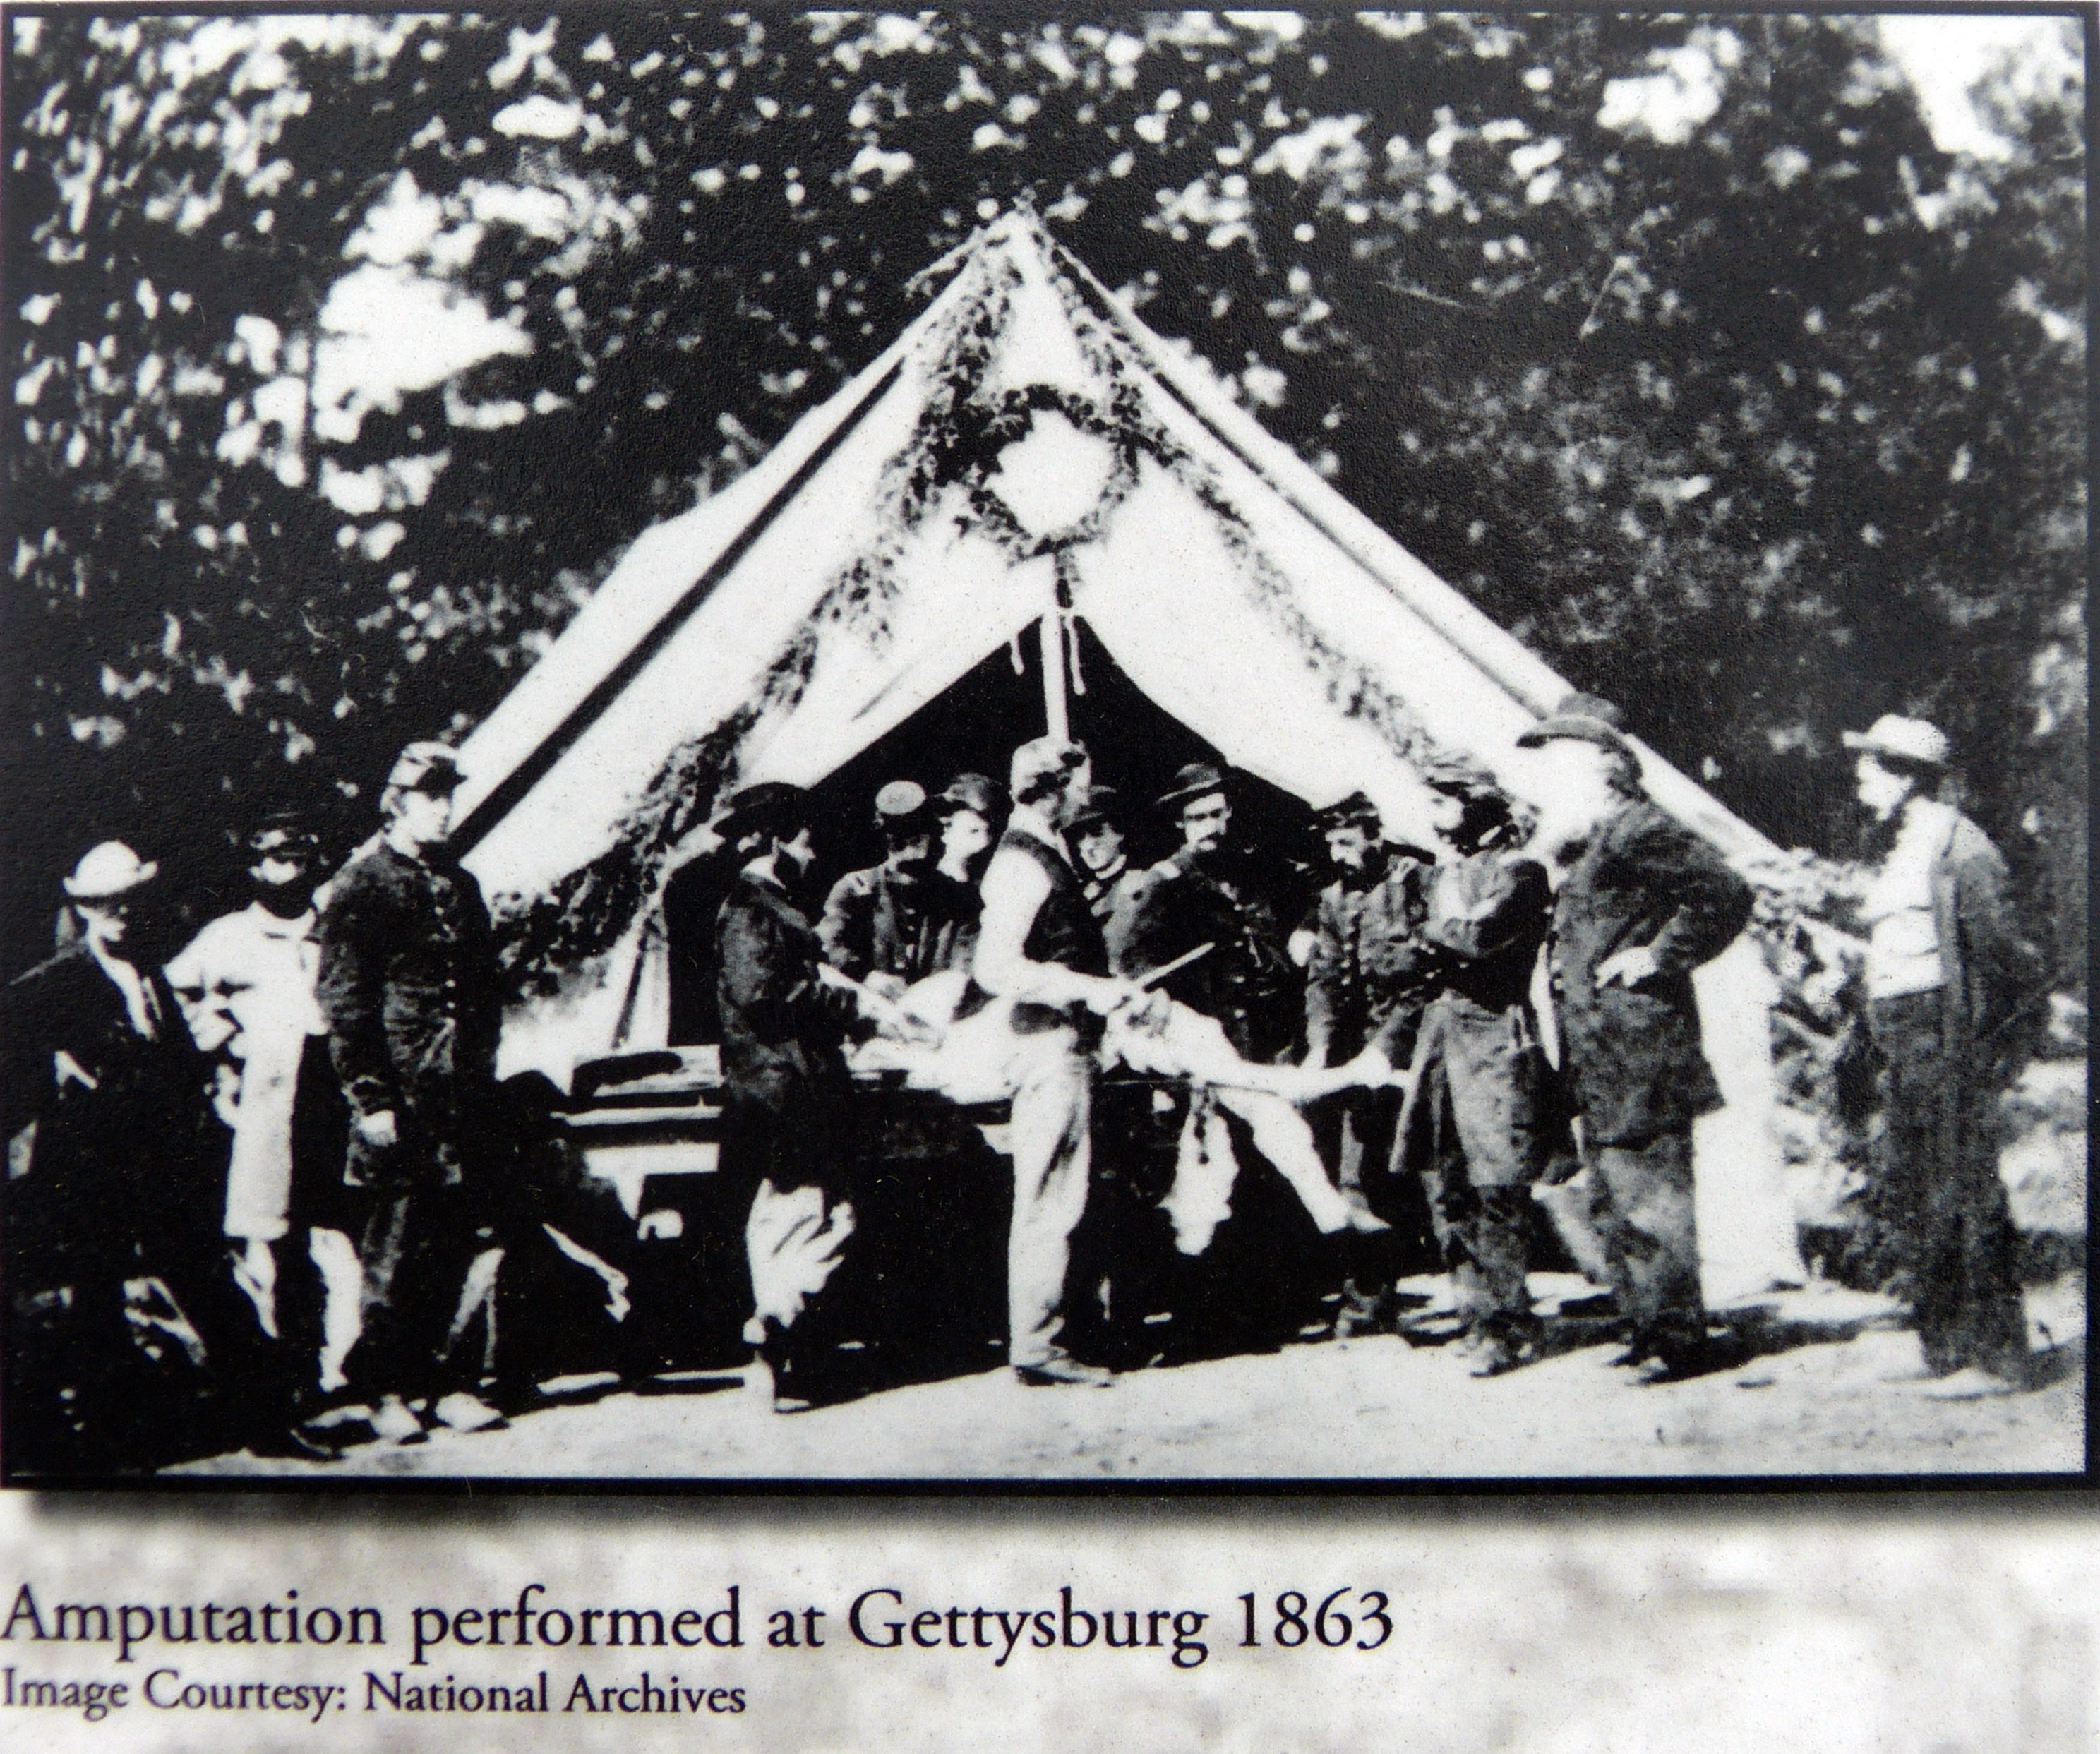 Amputation performed at Gettyburg 1863